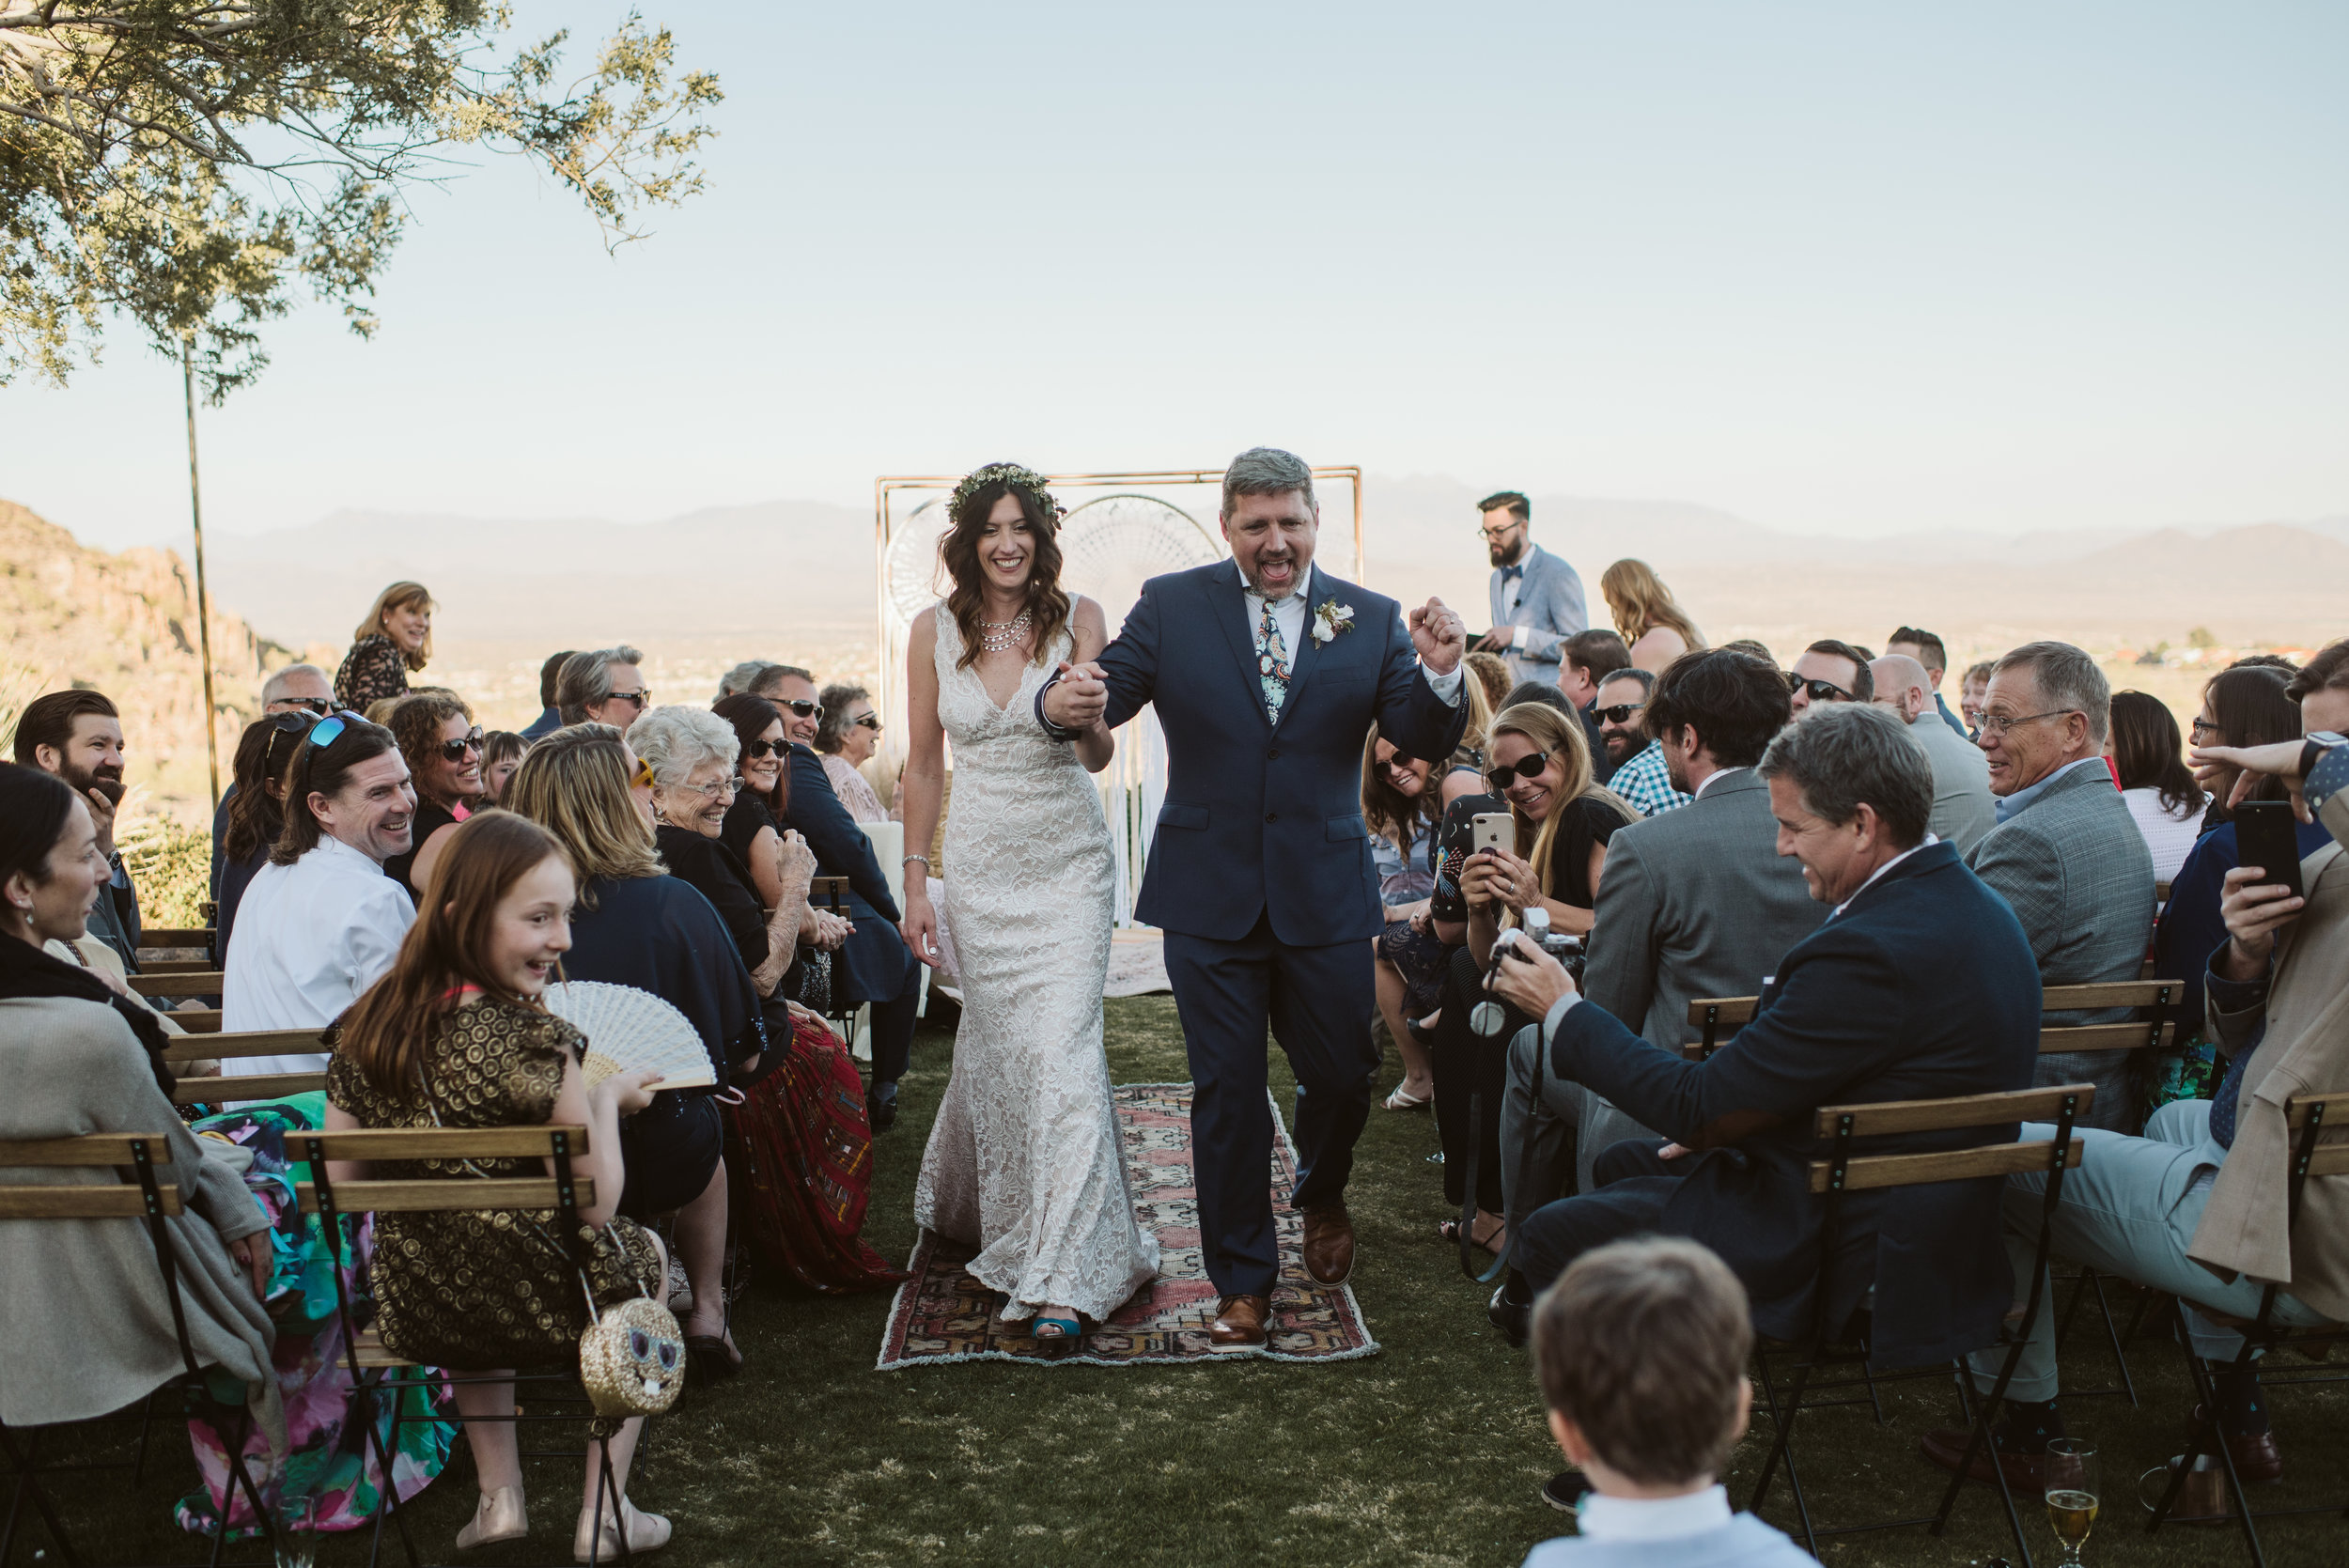 ArizonaWeddingPhotographer_Schad_0638.jpg